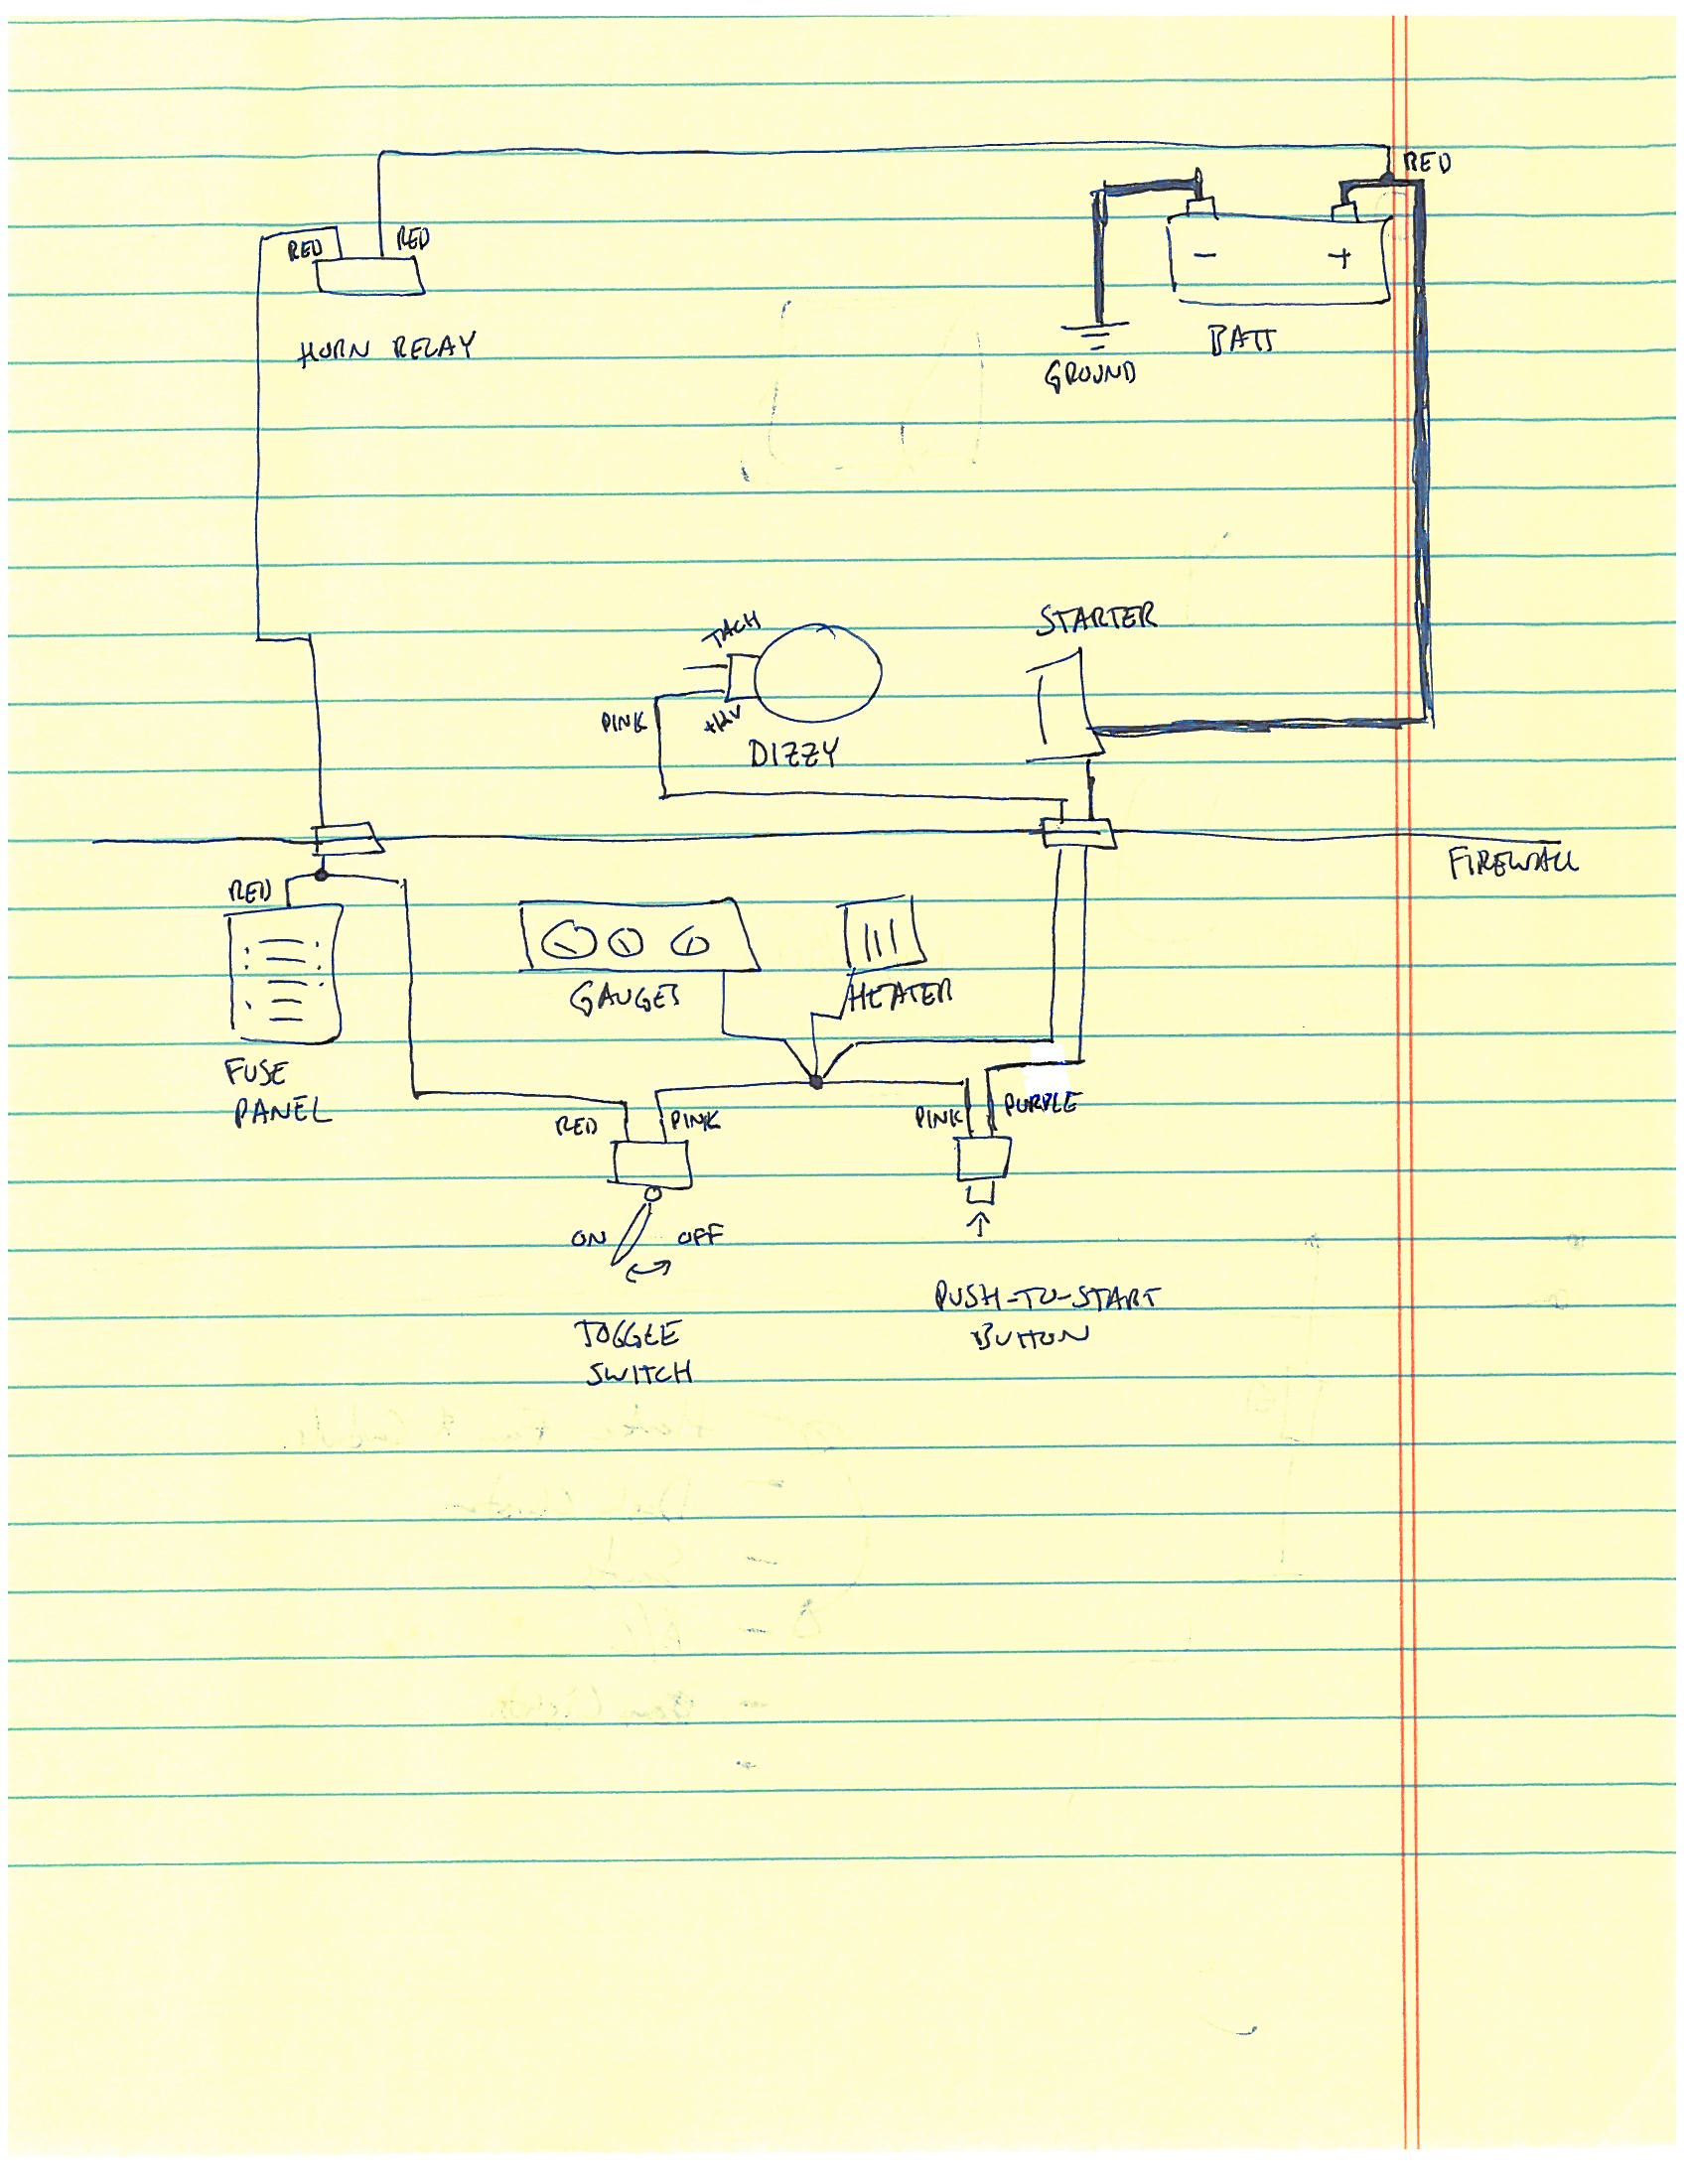 ingersoll rand engine with Showthread on Diesel Generator Control Panel Wiring Diagram in addition Hp1600wcu Ingersoll Rand Portable Diesel Air  pressor 1600 Cfm 80 175 5 5 12 1 Psi 2 Discharge Cummins Qsx15 Engine further Default moreover Industrial Air  pressor Market 78986532 additionally China Fashion Men S Jeans XOB10153M.